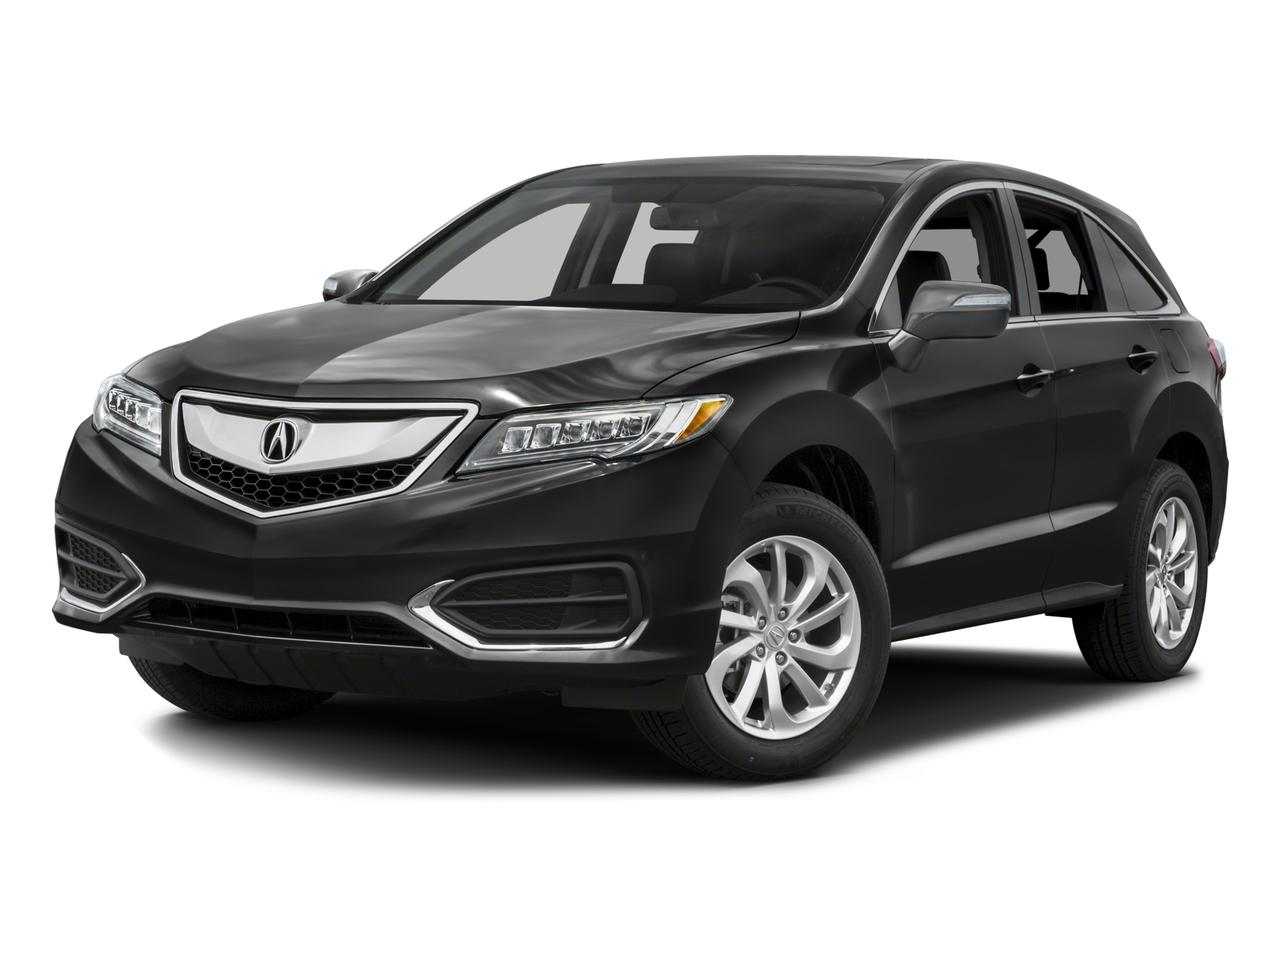 2016 Acura RDX Vehicle Photo in Southborough, MA 01772